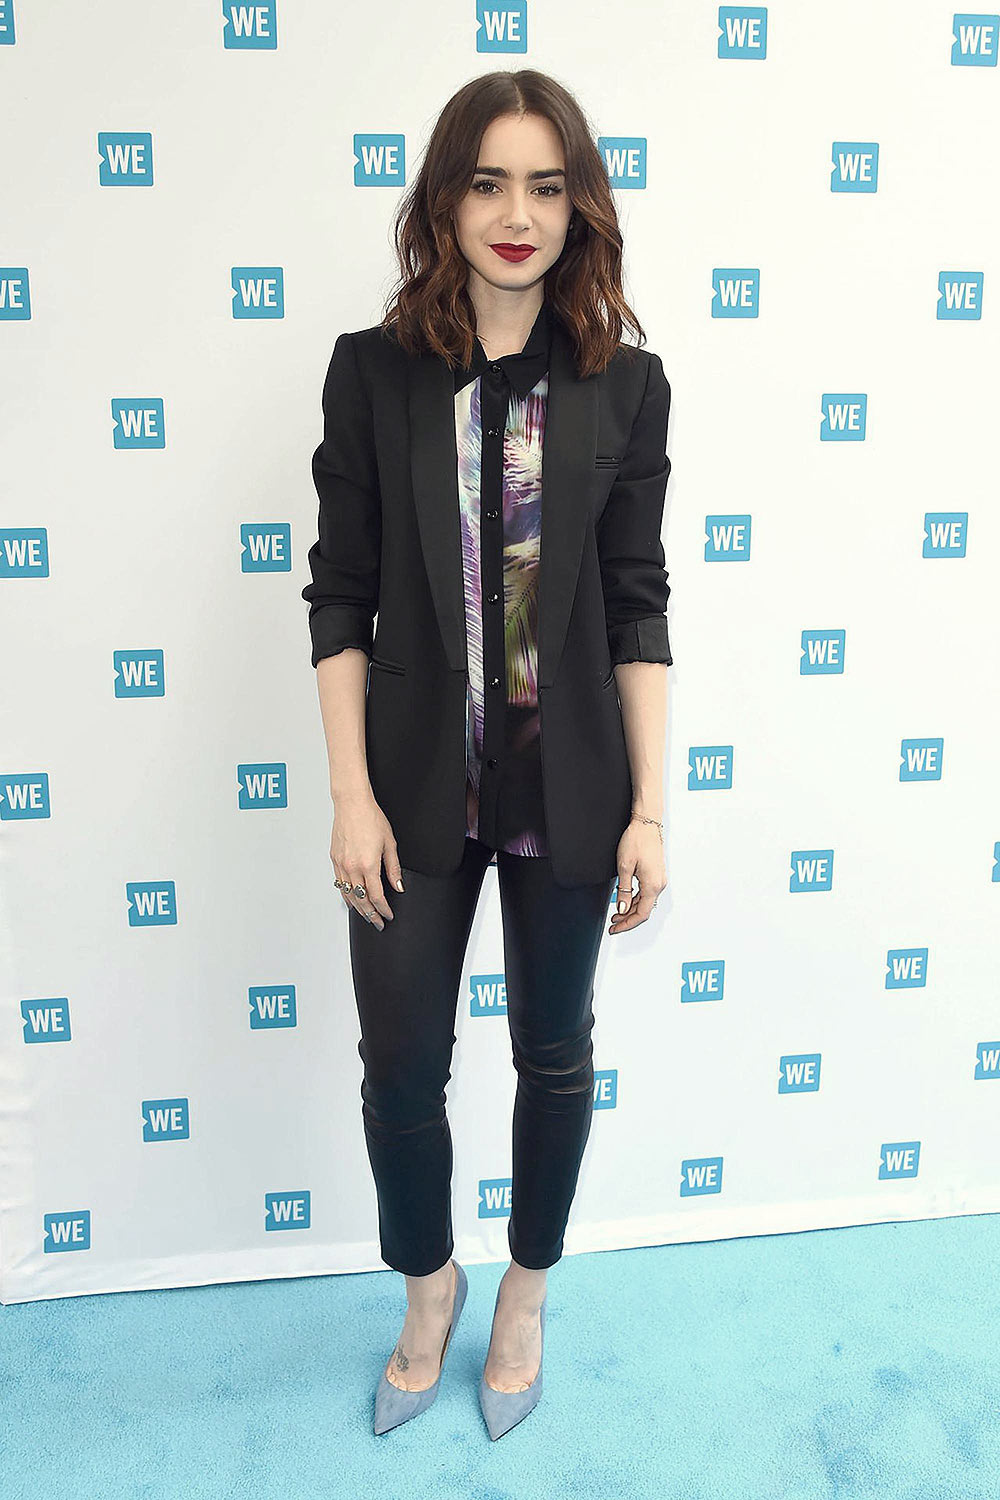 Lily Collins attends WE Day Cocktail Party